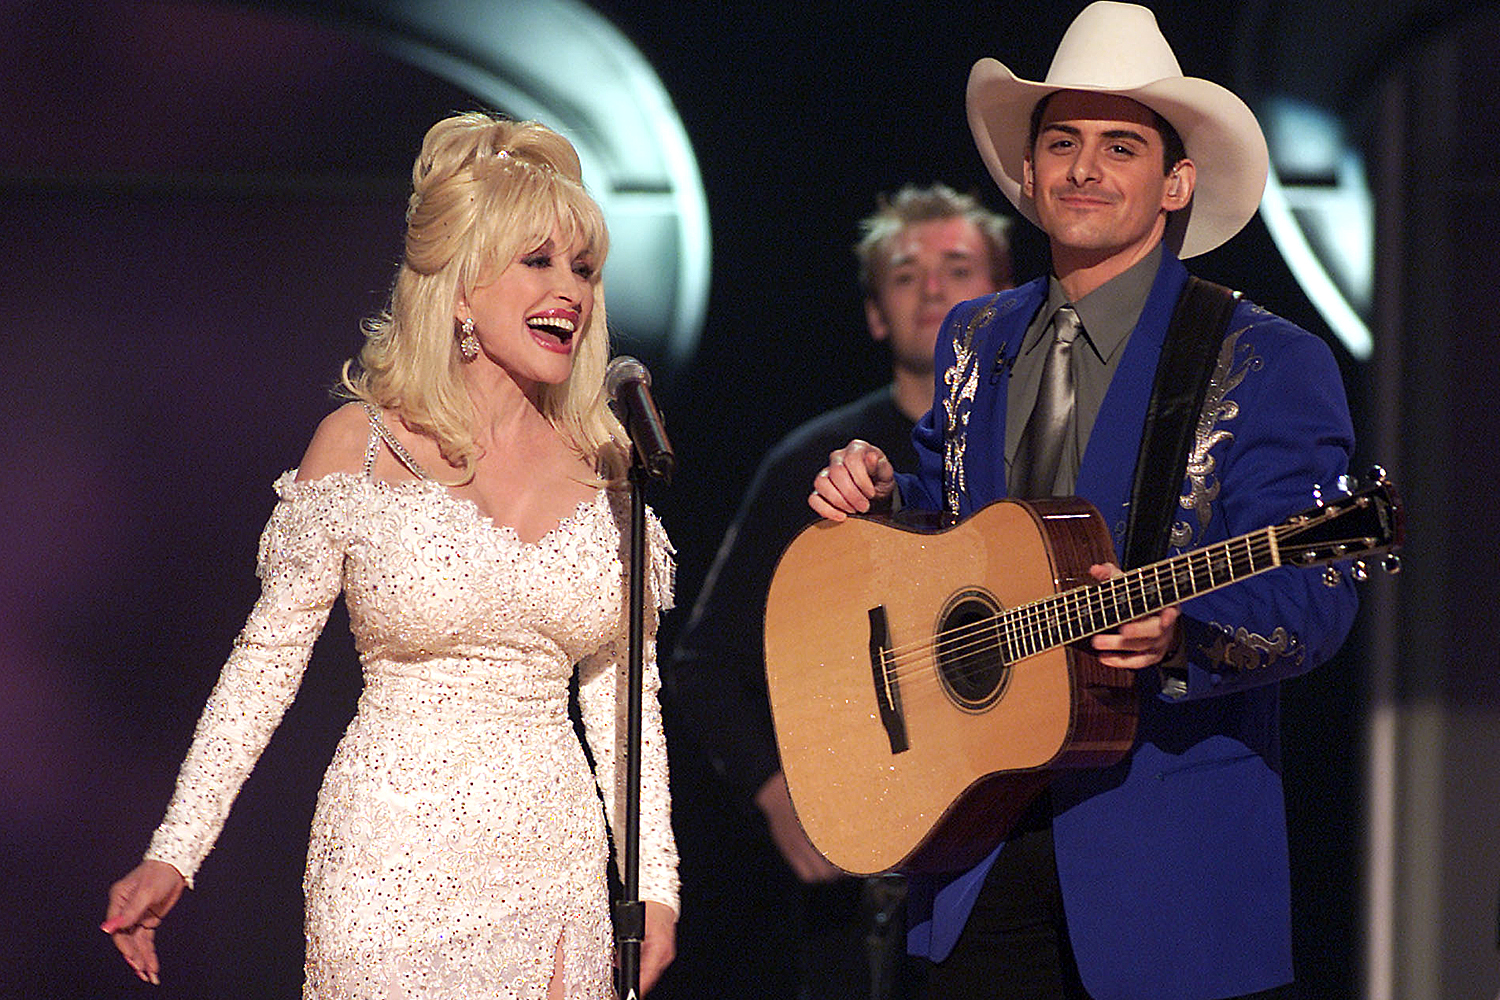 Dolly Parton and Brad Paisley performing a duet at the 43rd Annual Grammy Awards